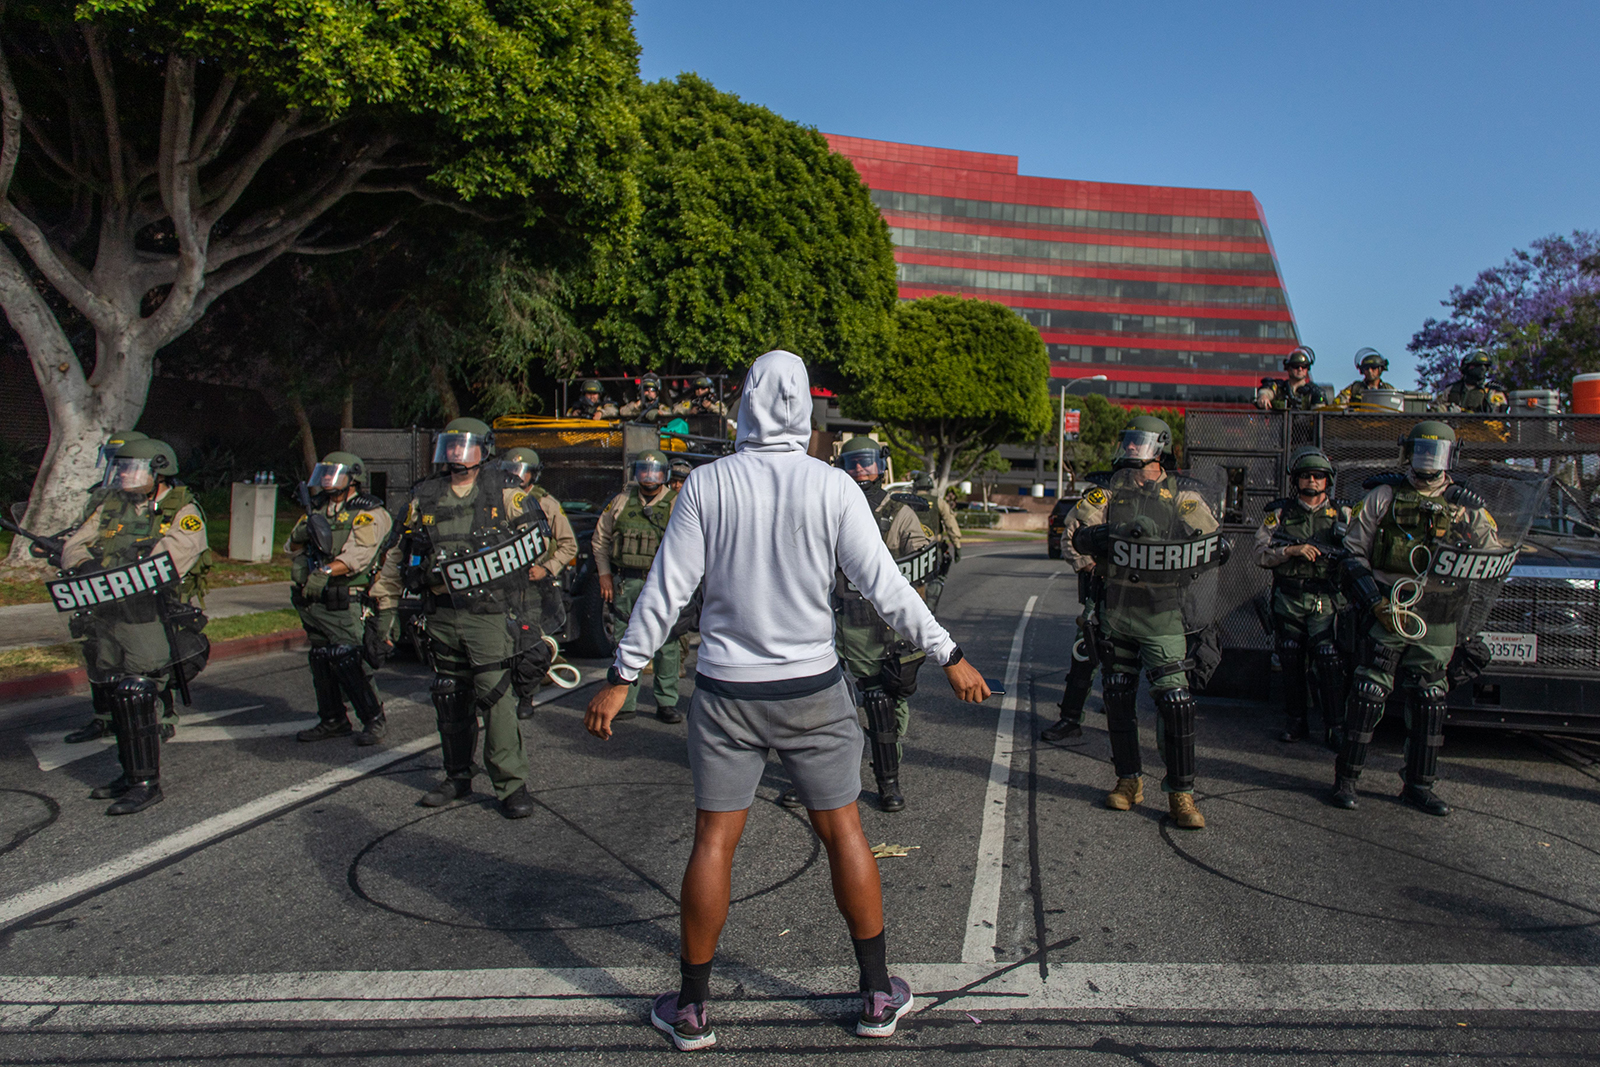 A demonstrator stands in front of West Hollywood Sheriffs Police Department during a peaceful protest in West Hollywood, California on June 6.